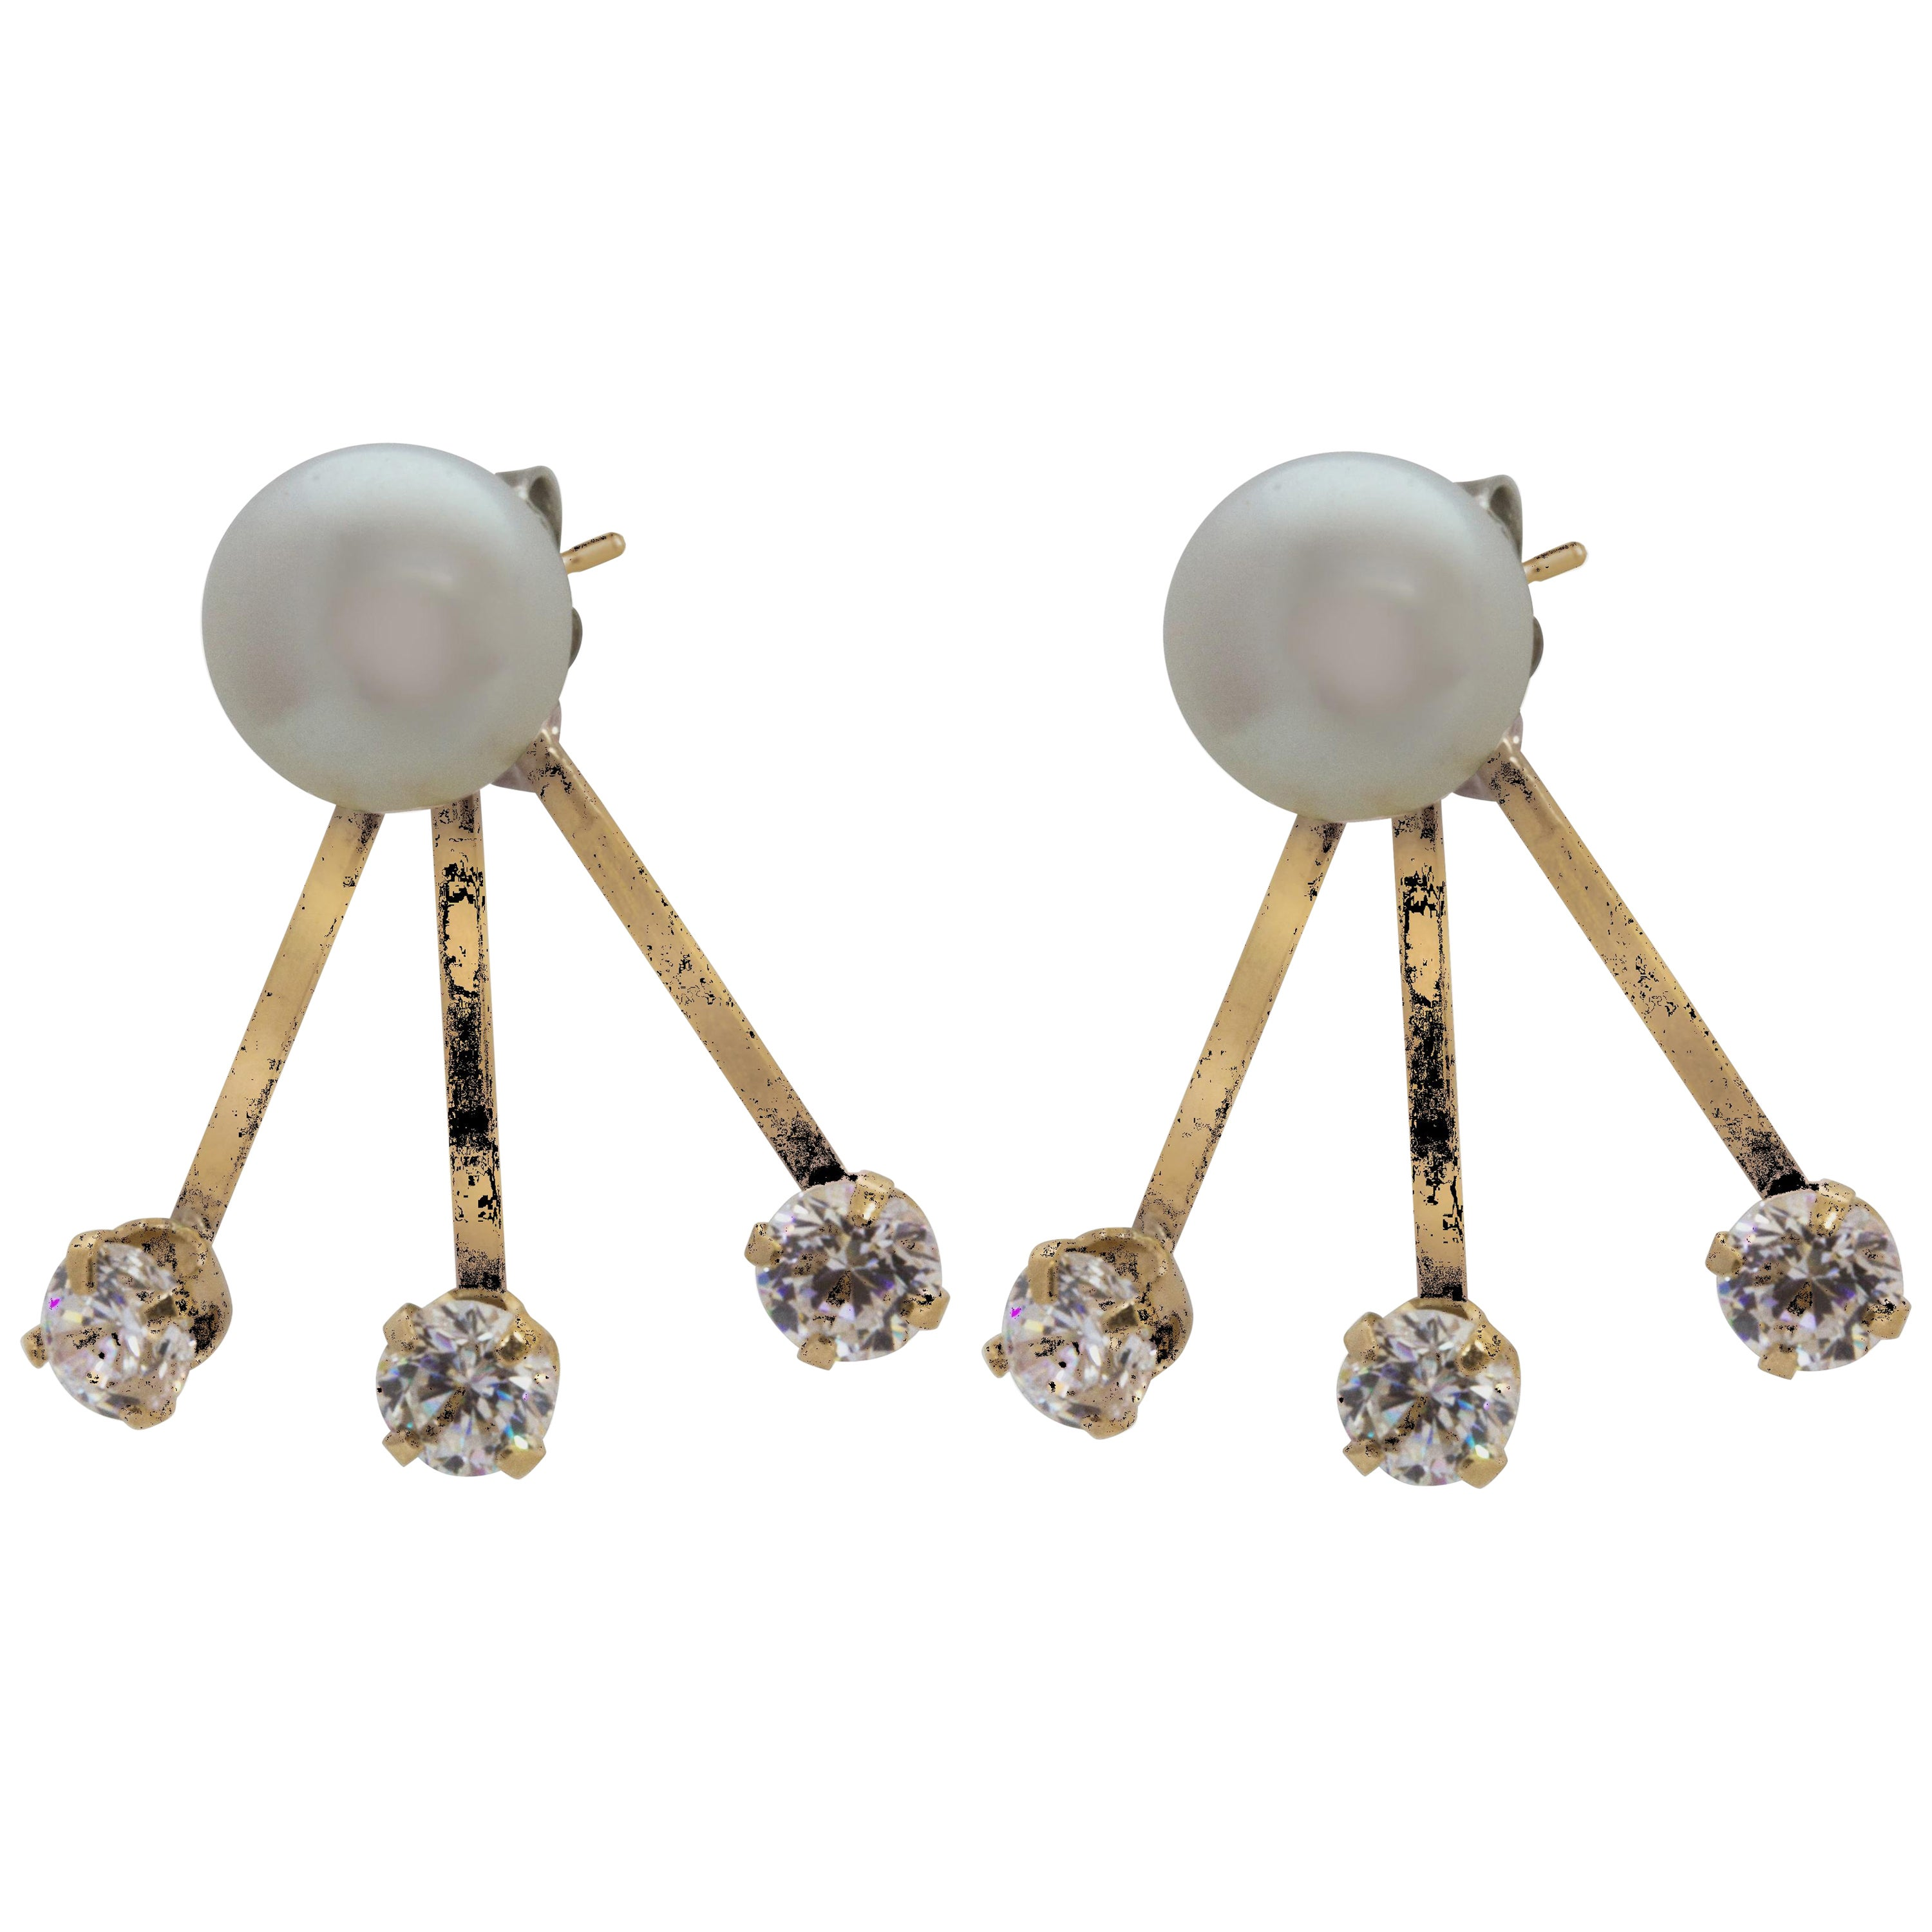 3ed18fbb4 14 Karat Yellow Gold Tribal Style Freshwater Pearl and Cubic Zirconia  Earrings For Sale at 1stdibs